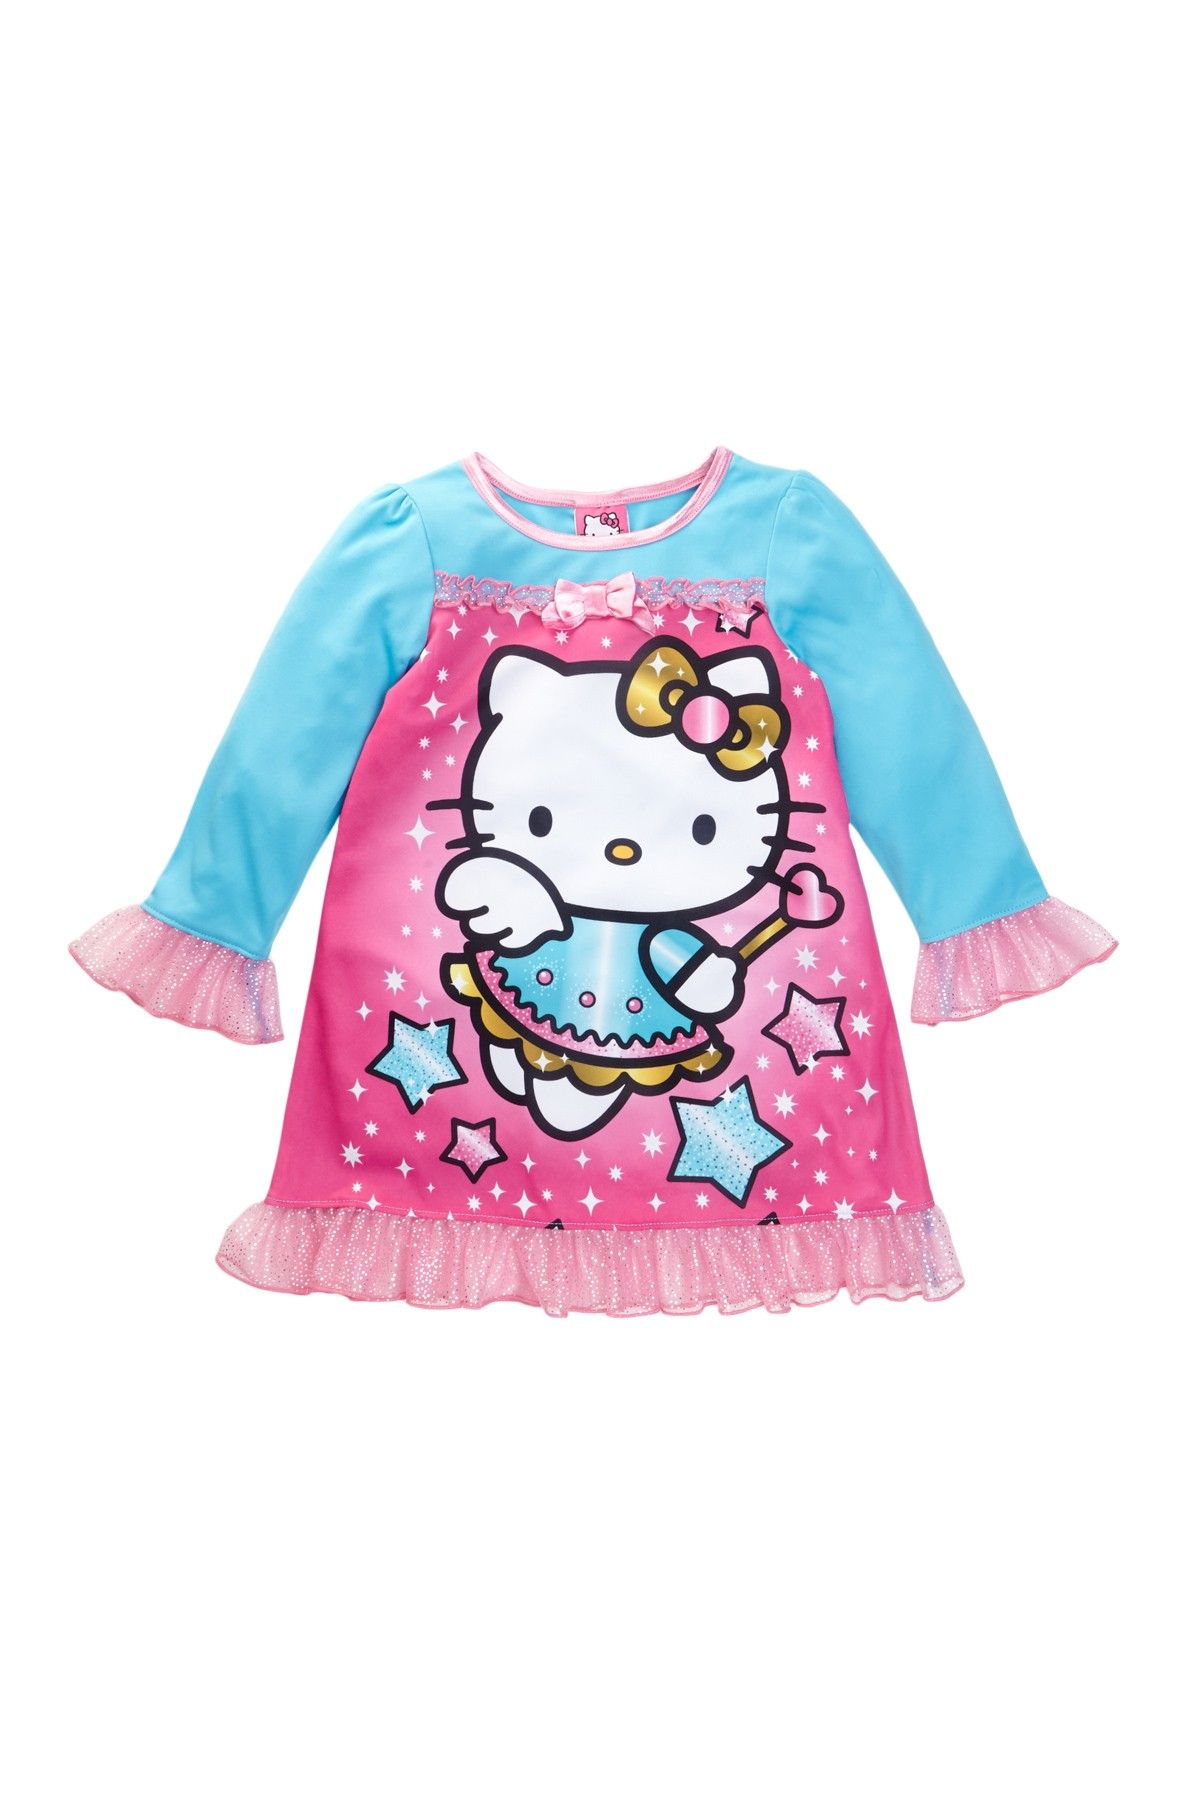 Hello Kitty Nightgown Toddler Girls Nightgownkids With